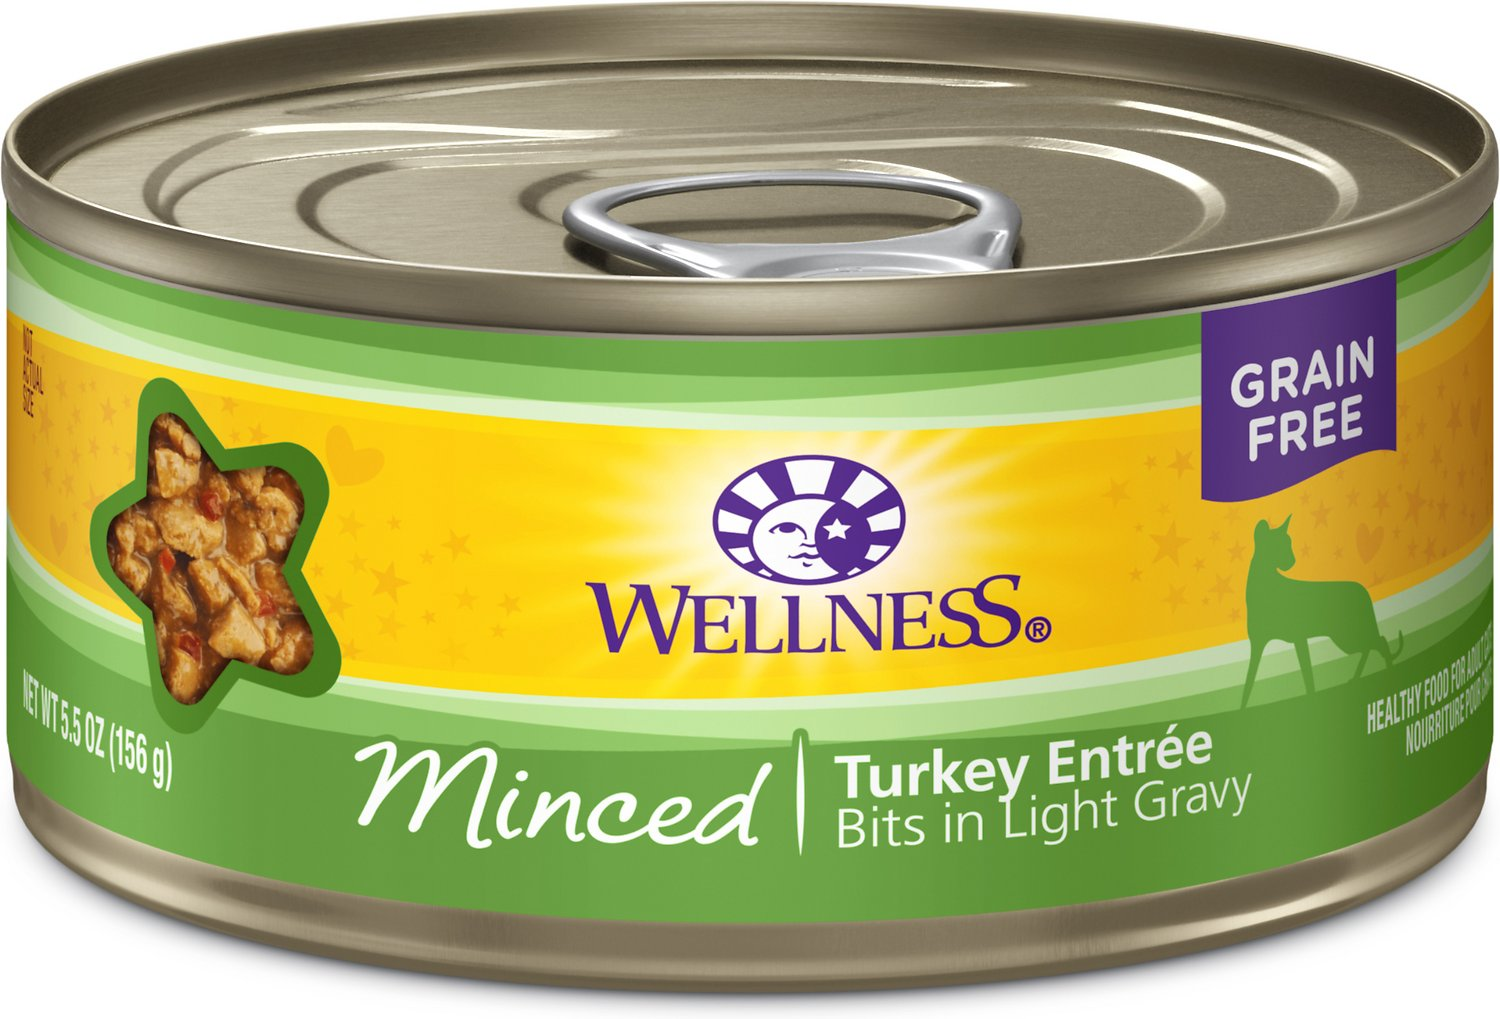 Wellness Minced Turkey Entree Grain-Free Canned Cat Food, 3-oz